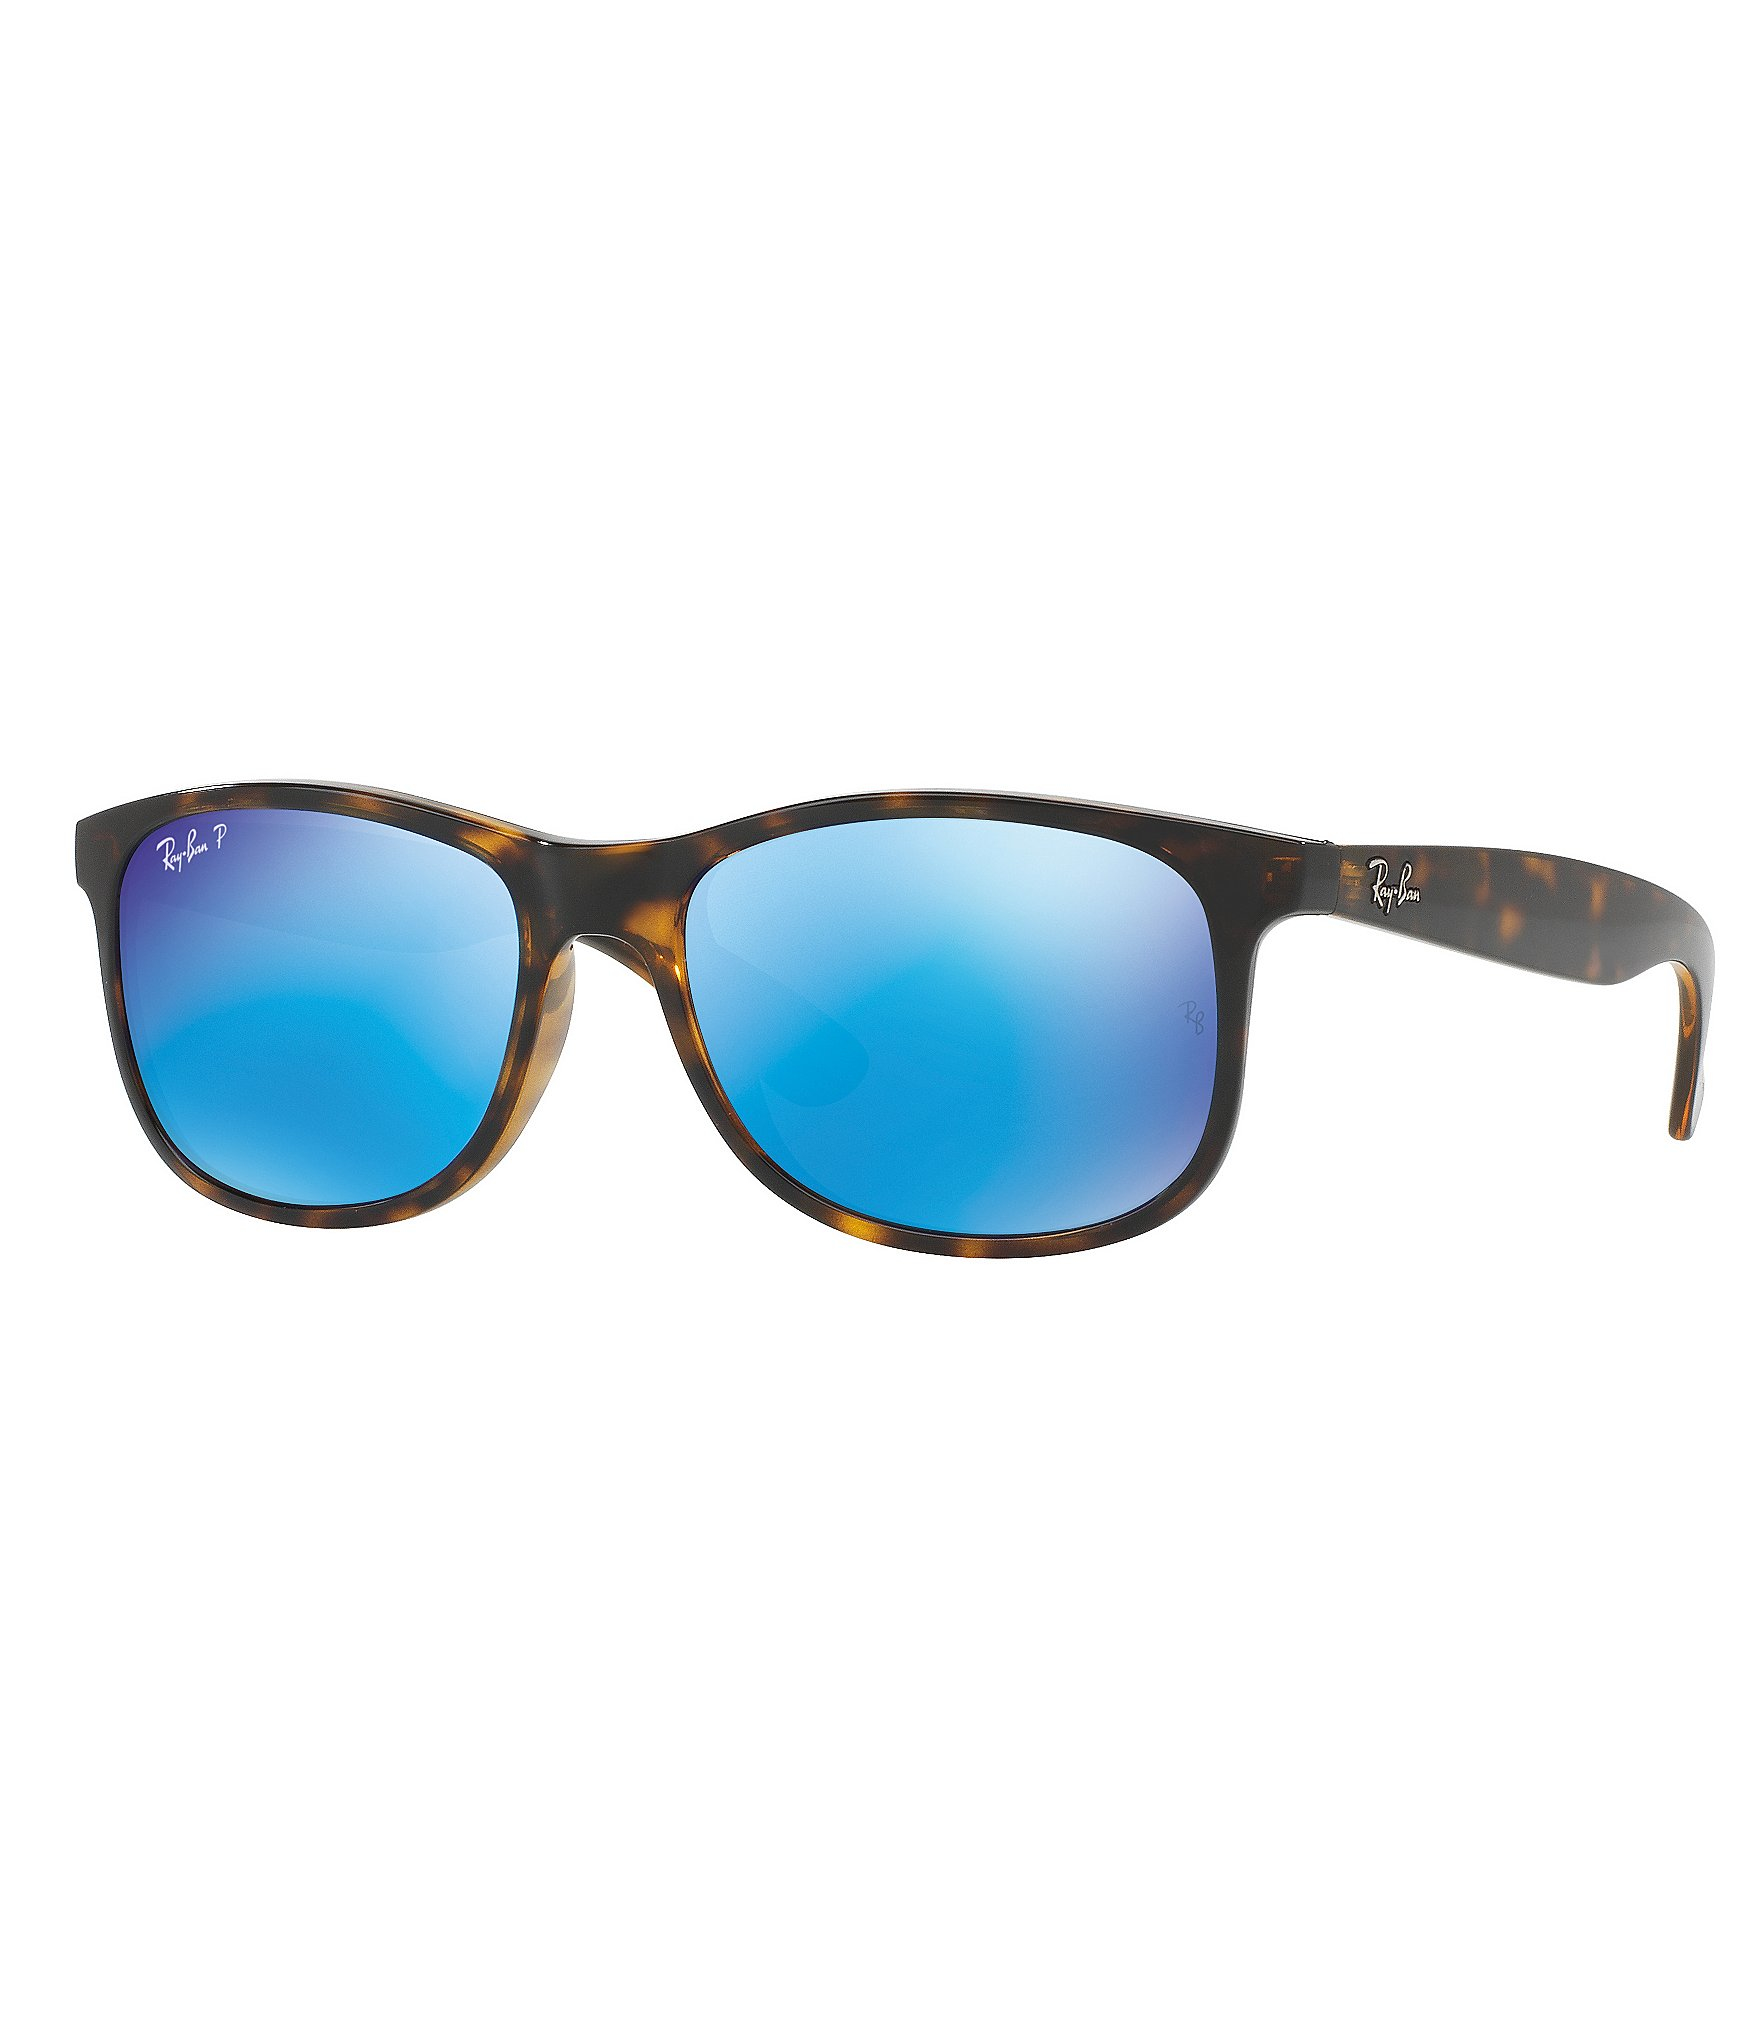 Ray Ban Flash Mirror Lens Clubmaster Sunglasses